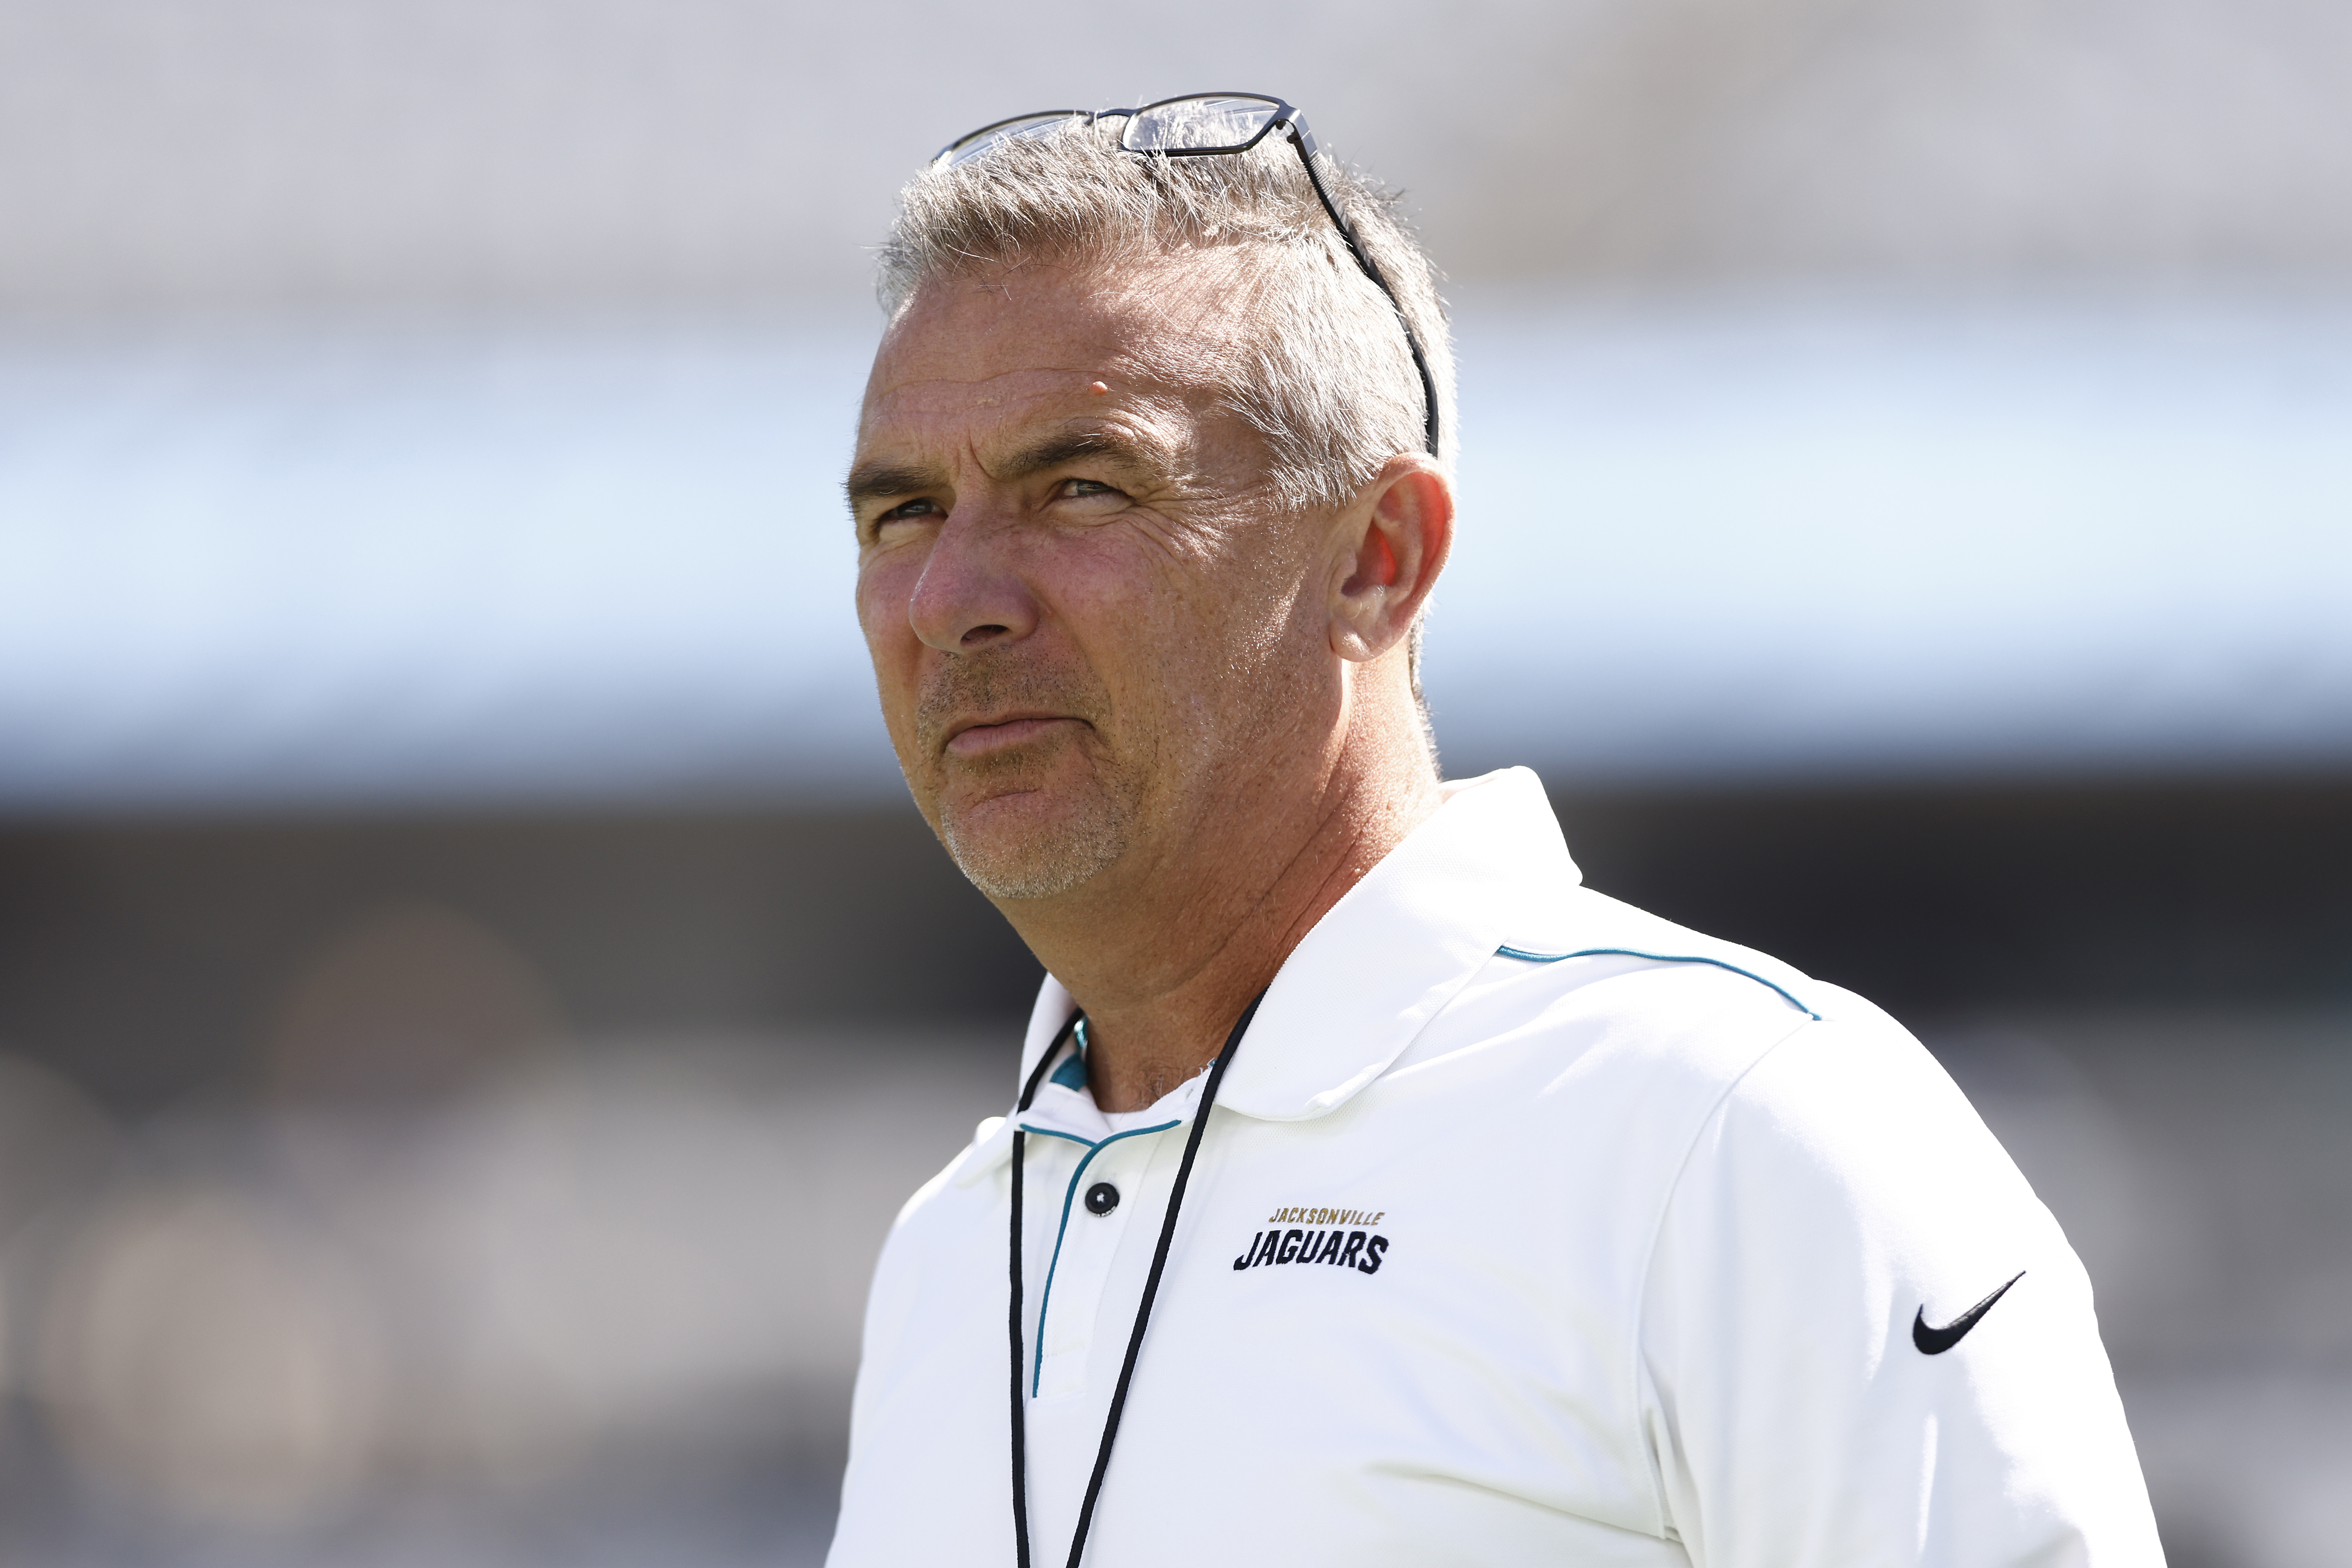 Urban Meyer Has 'Zero Credibility' with Jaguars After Viral Bar Video, Player Says